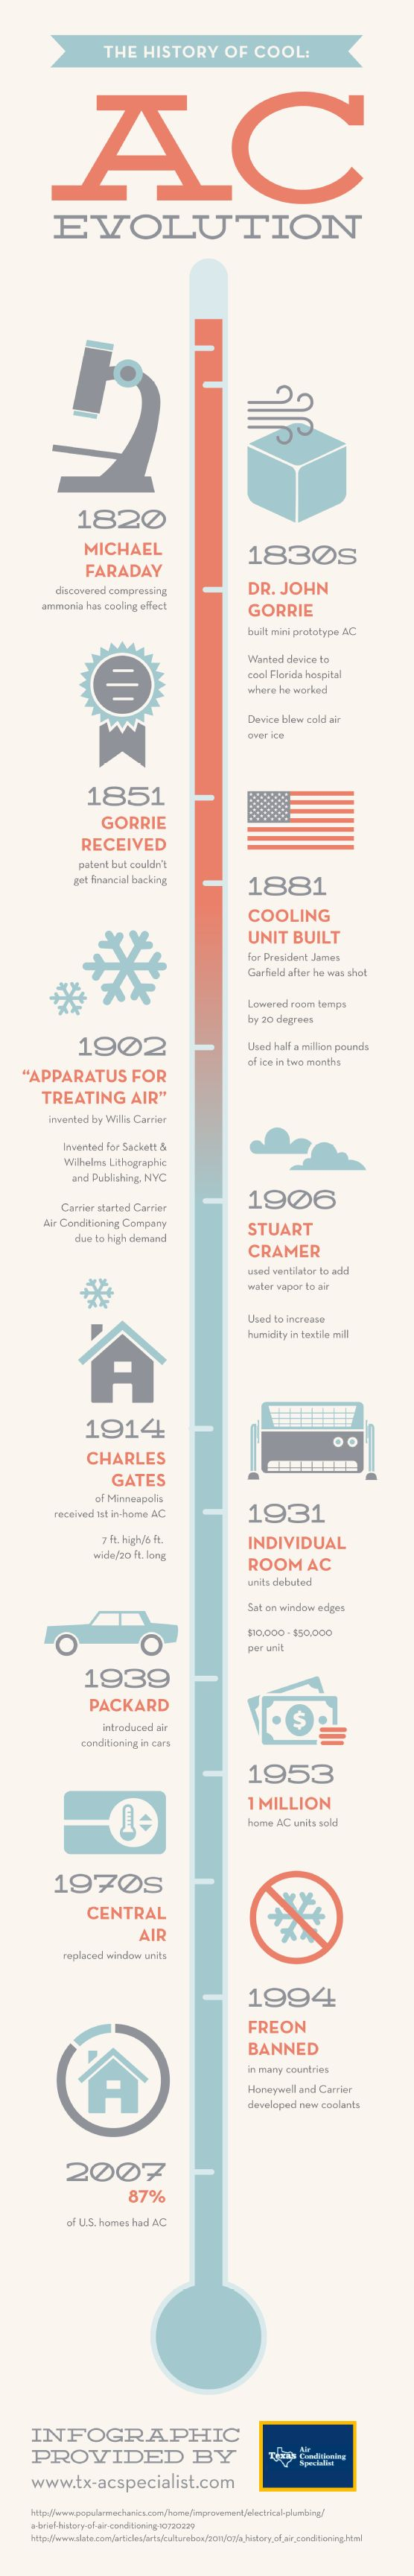 In 1931, individual room AC units made their debut. At the time, each unit cost between $10,000 and $50,000. Check out this infographic to learn about air conditioners and how they evolved into the efficient cooling units they are today.